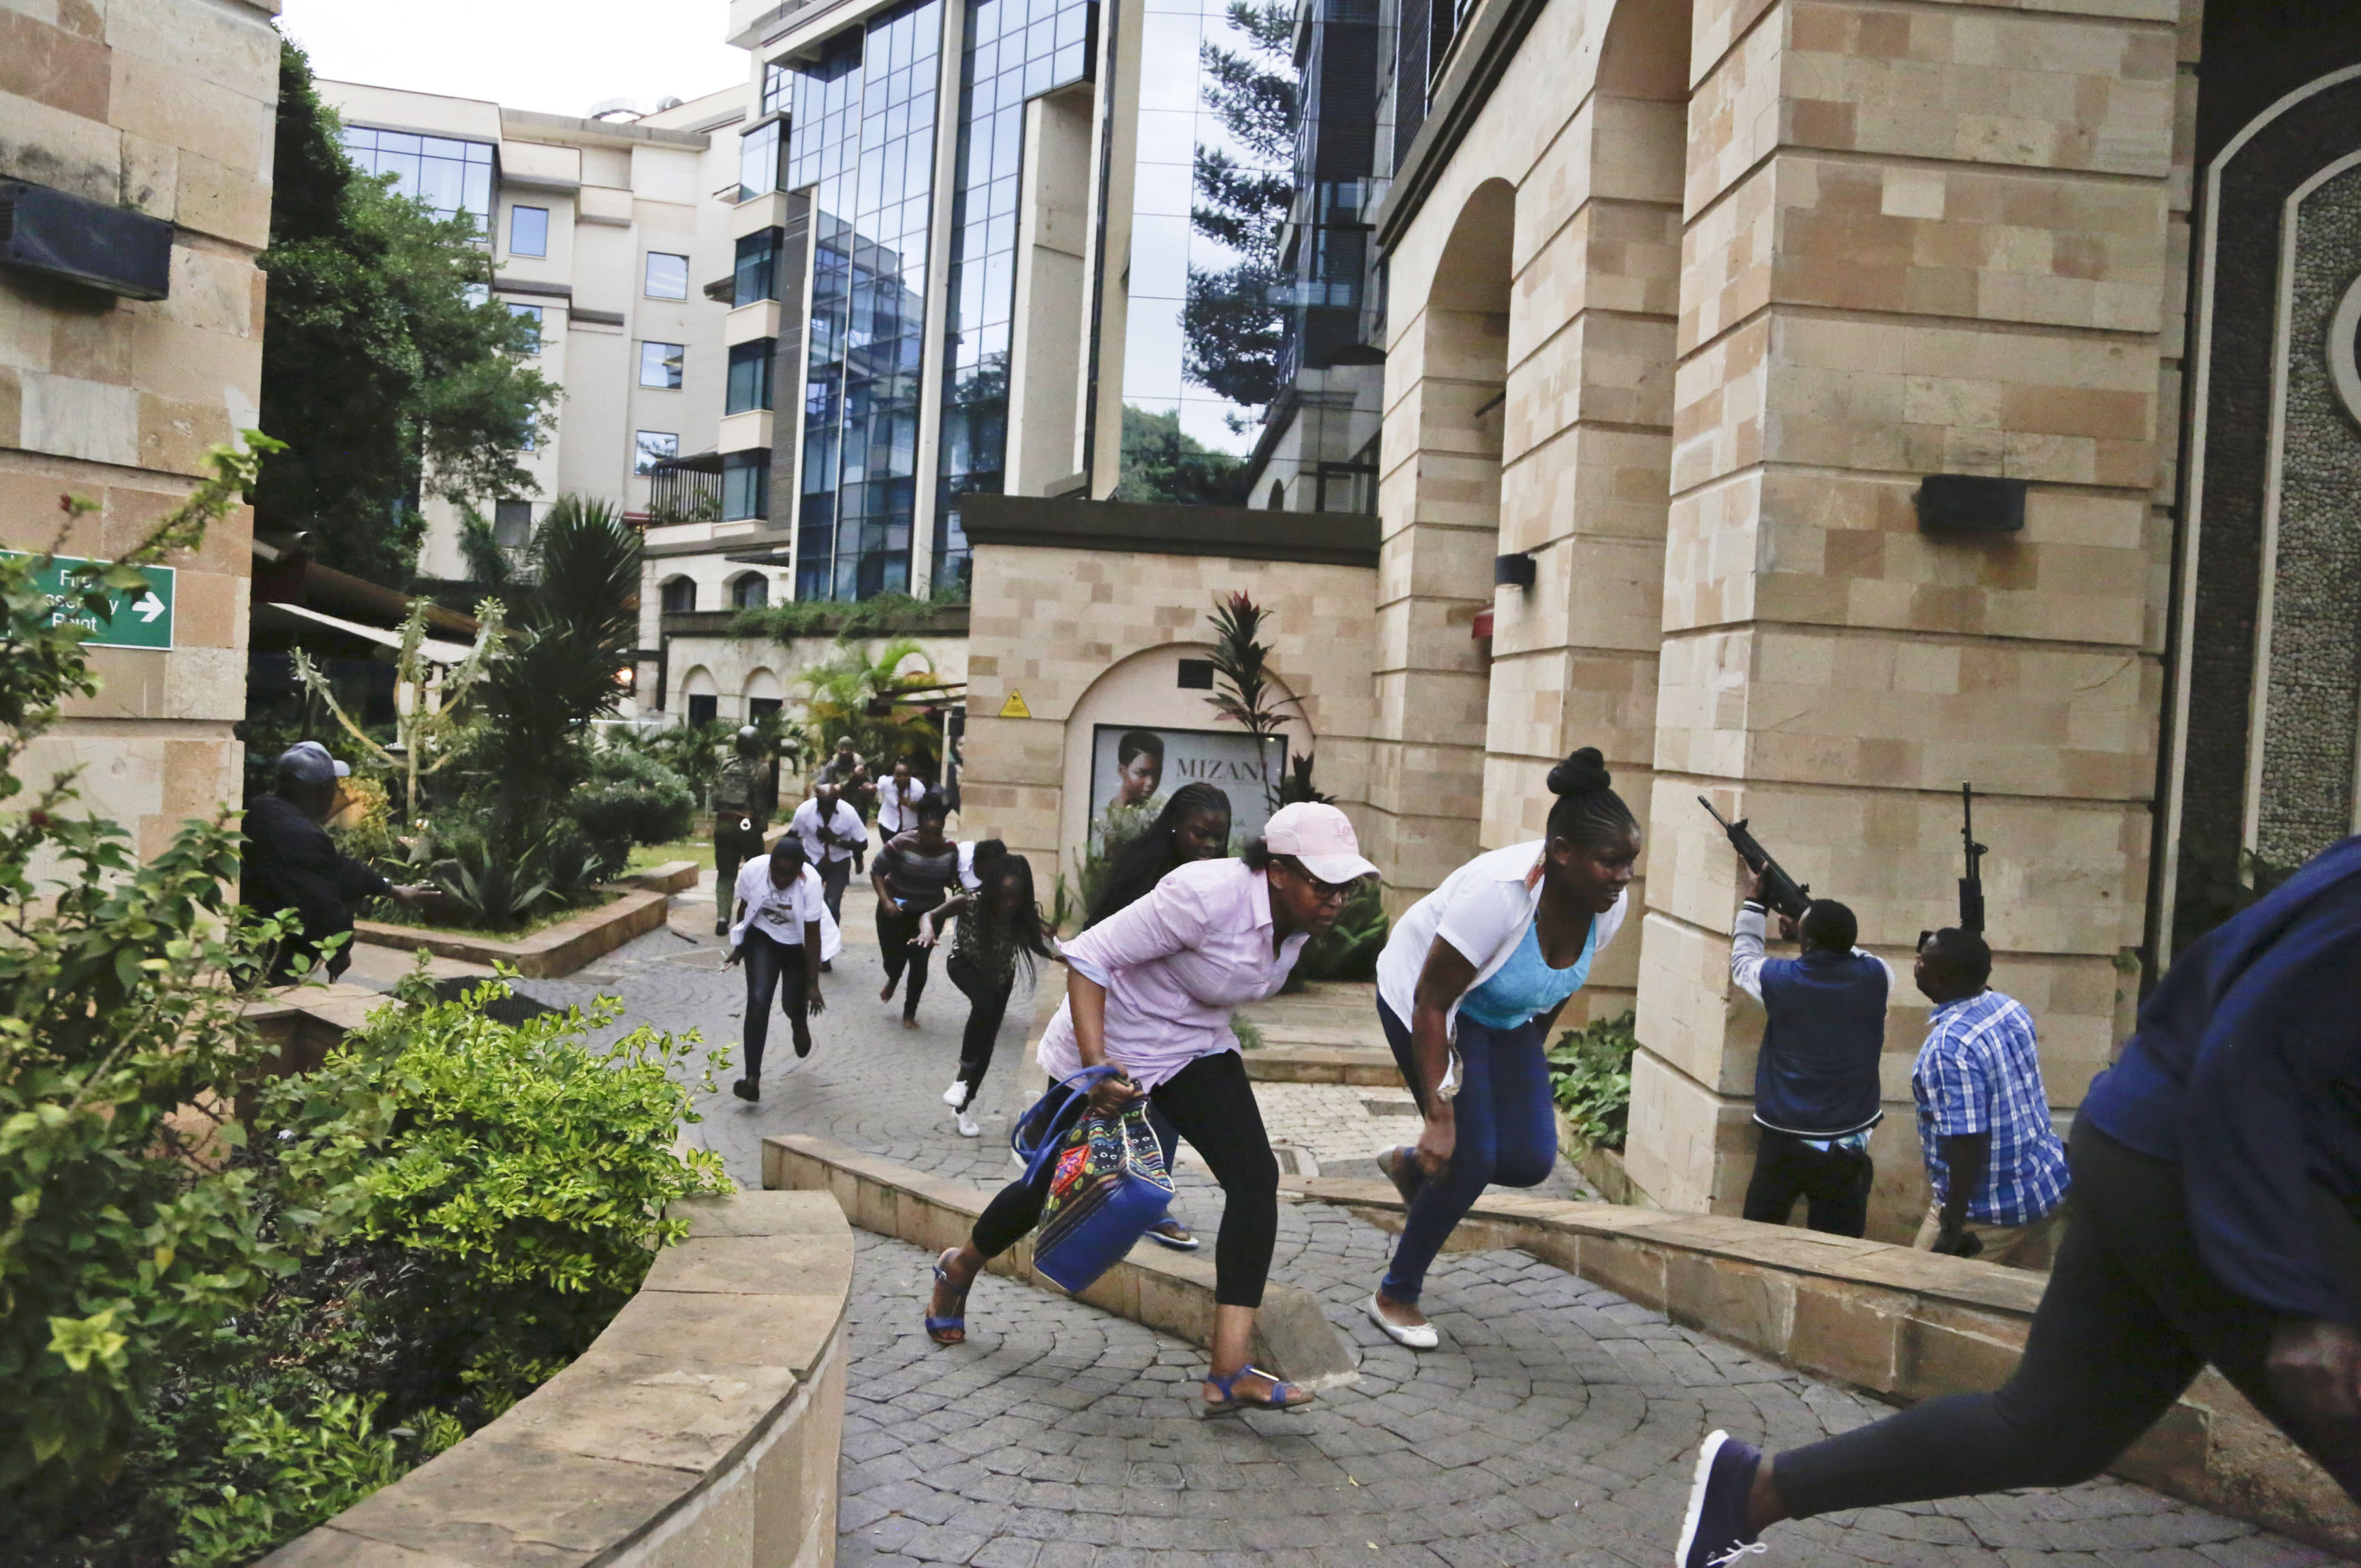 FILE - In this Jan. 15, 2019 file photo, people flee as security forces aim their weapons during a deadly attack by extremists at a luxury hotel complex in Nairobi, Kenya. Islamic extremists are already exploiting possible U.S. military cuts in Africa that have caused a rare bipartisan outcry in Washington, with lawmakers stressing the need to counter China and Russia and rein in a growing threat from fighters linked to the Islamic State group. (AP Photo/Khalil Senosi, File)